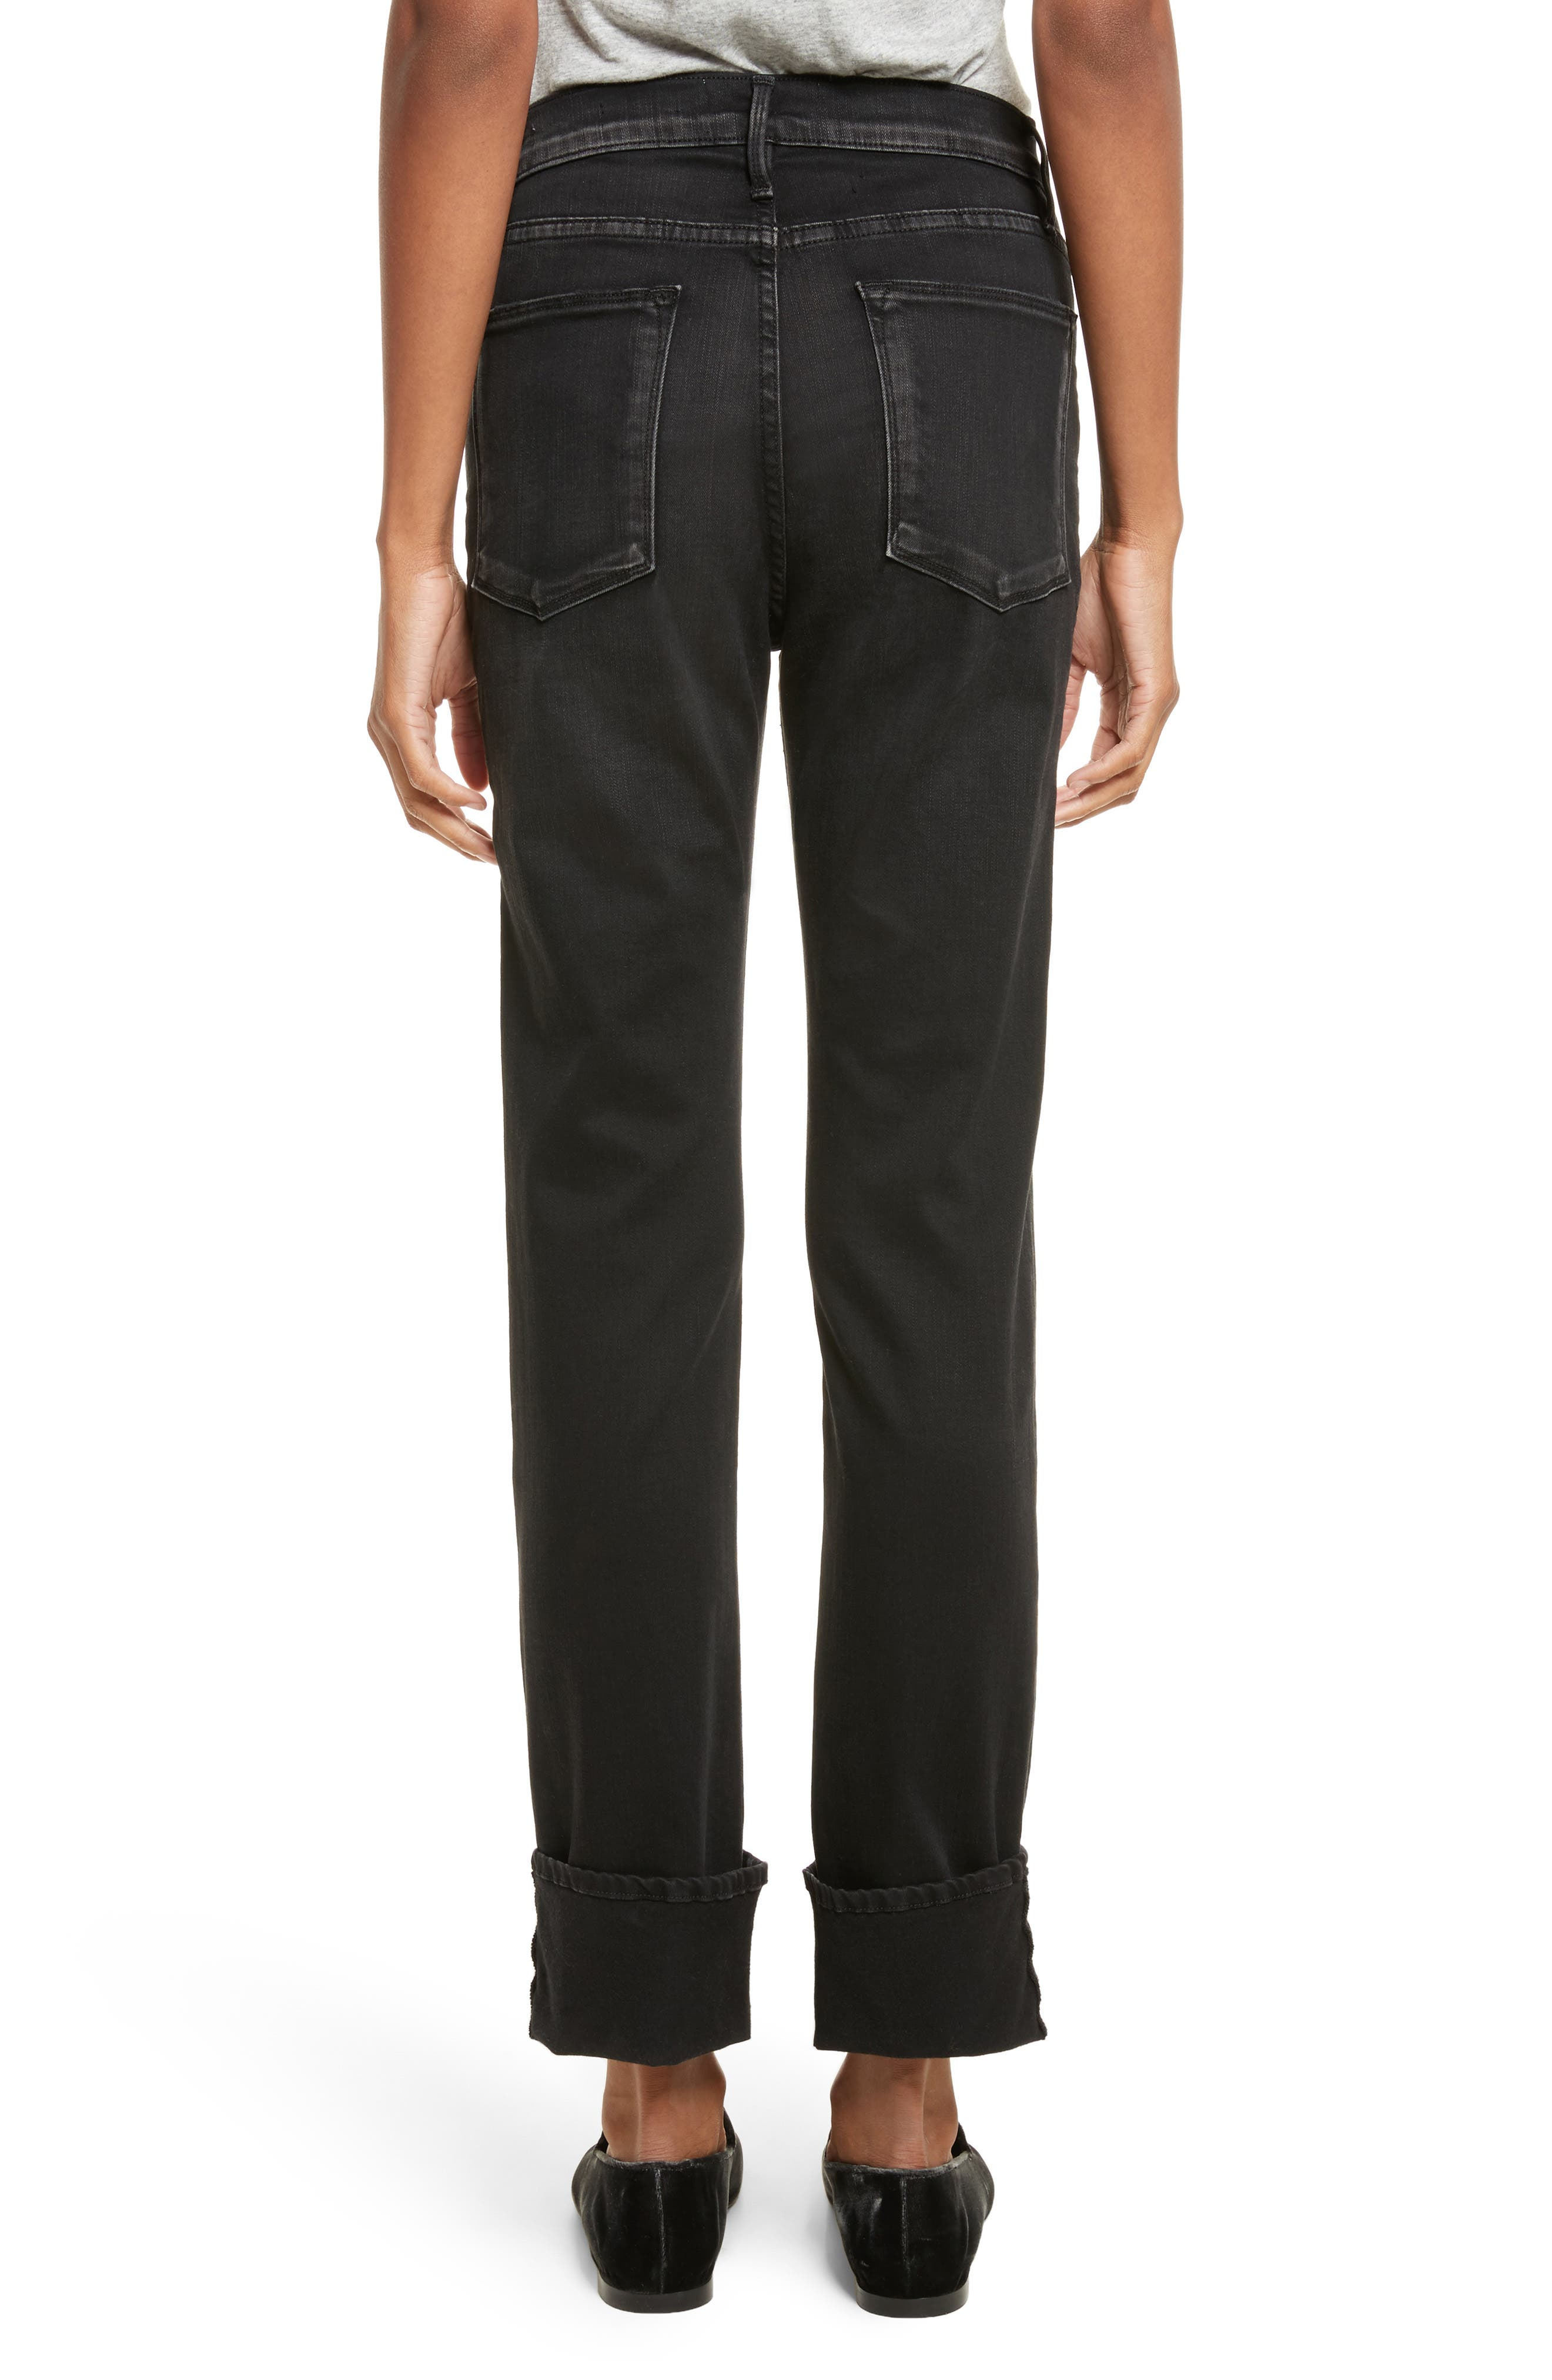 Le High Straight Leg Cuffed Jeans,                             Alternate thumbnail 2, color,                             001